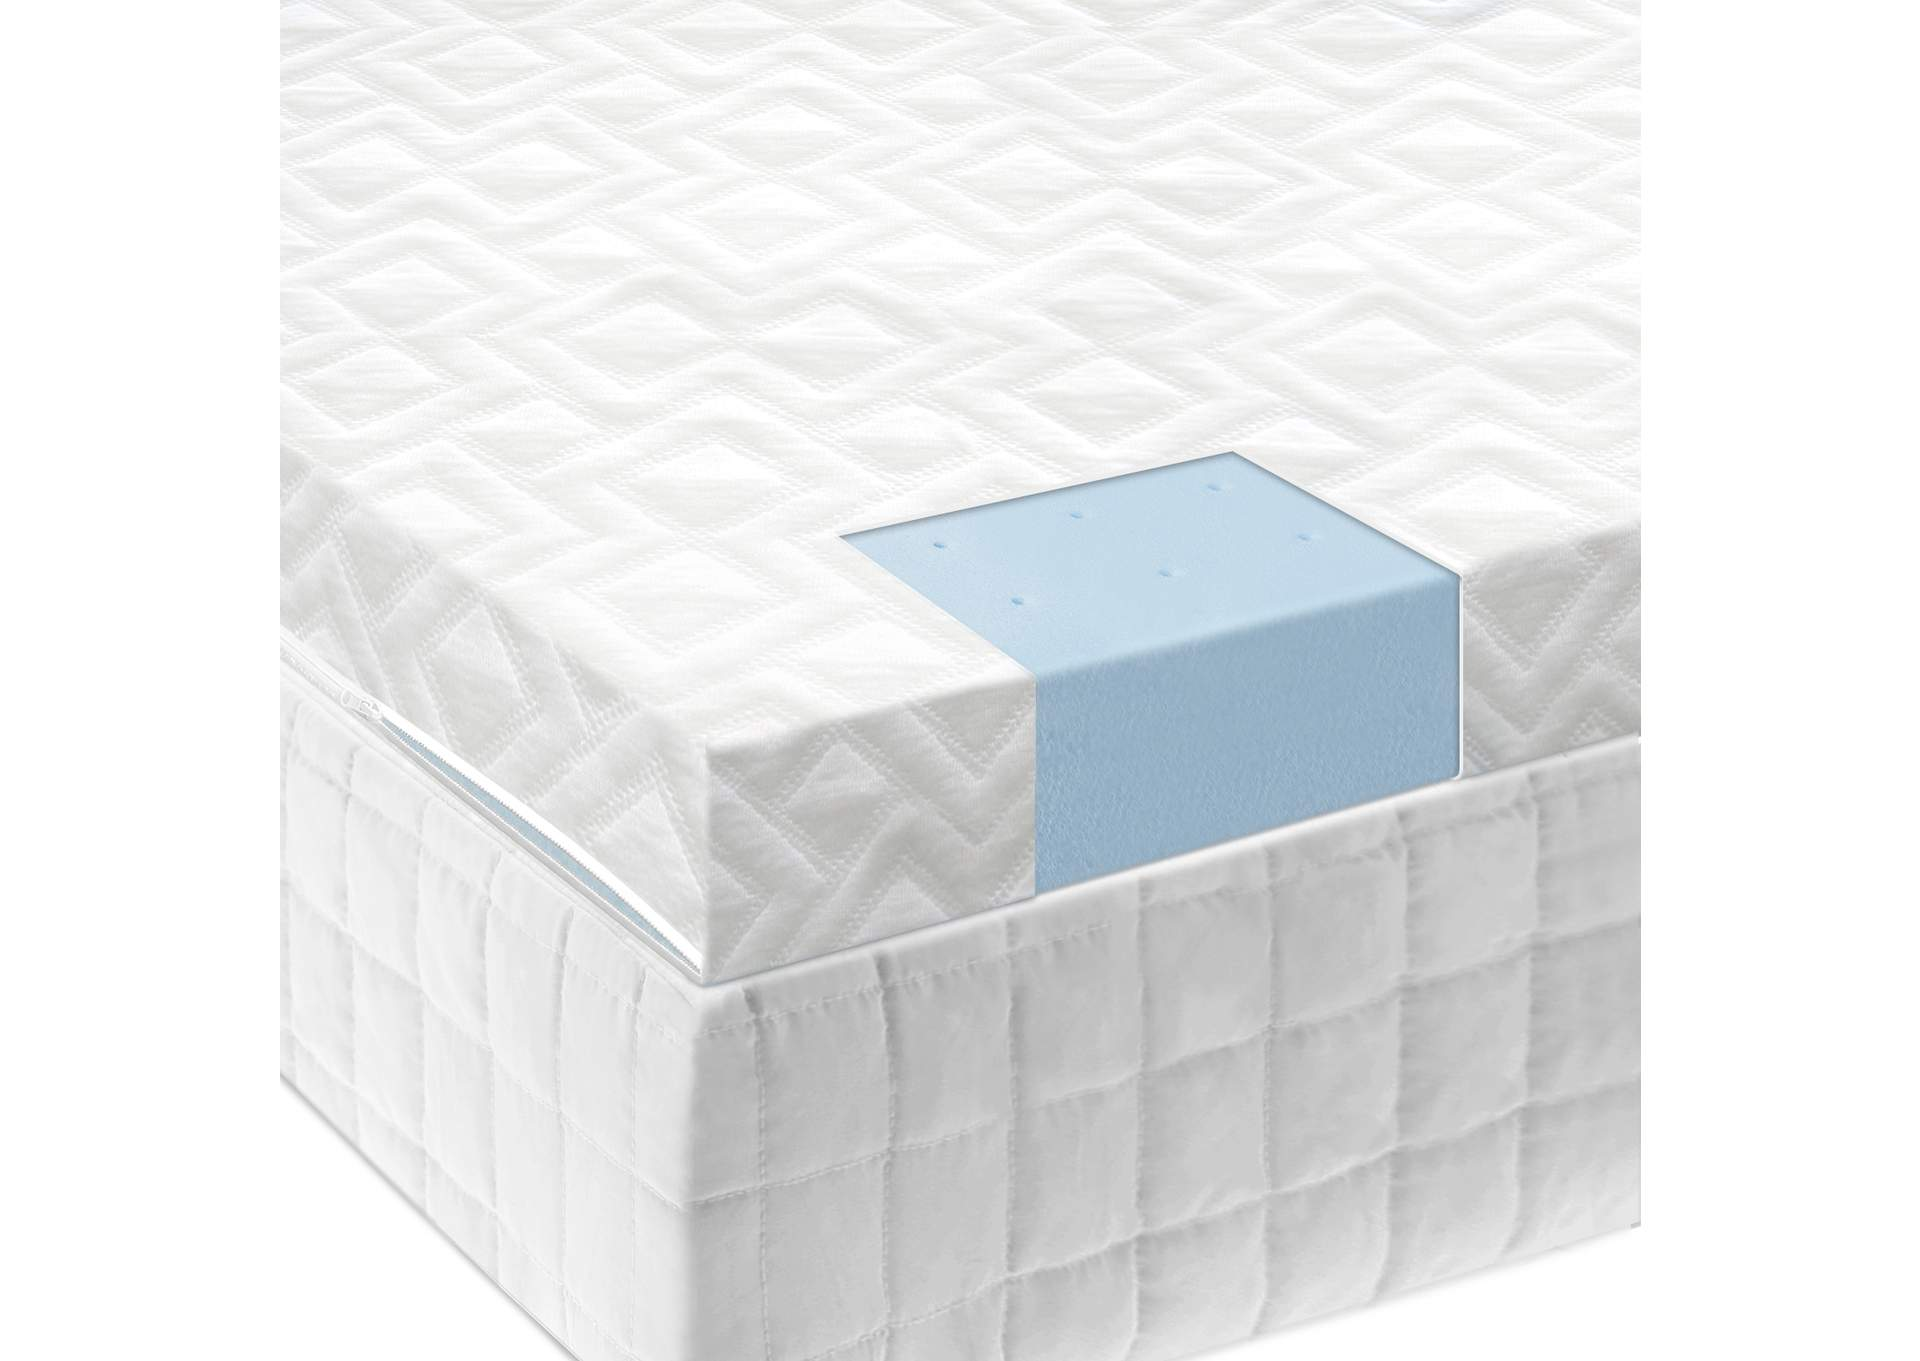 2 5 Inch Gel Memory Foam Mattress Topper Queen Homestead Furniture